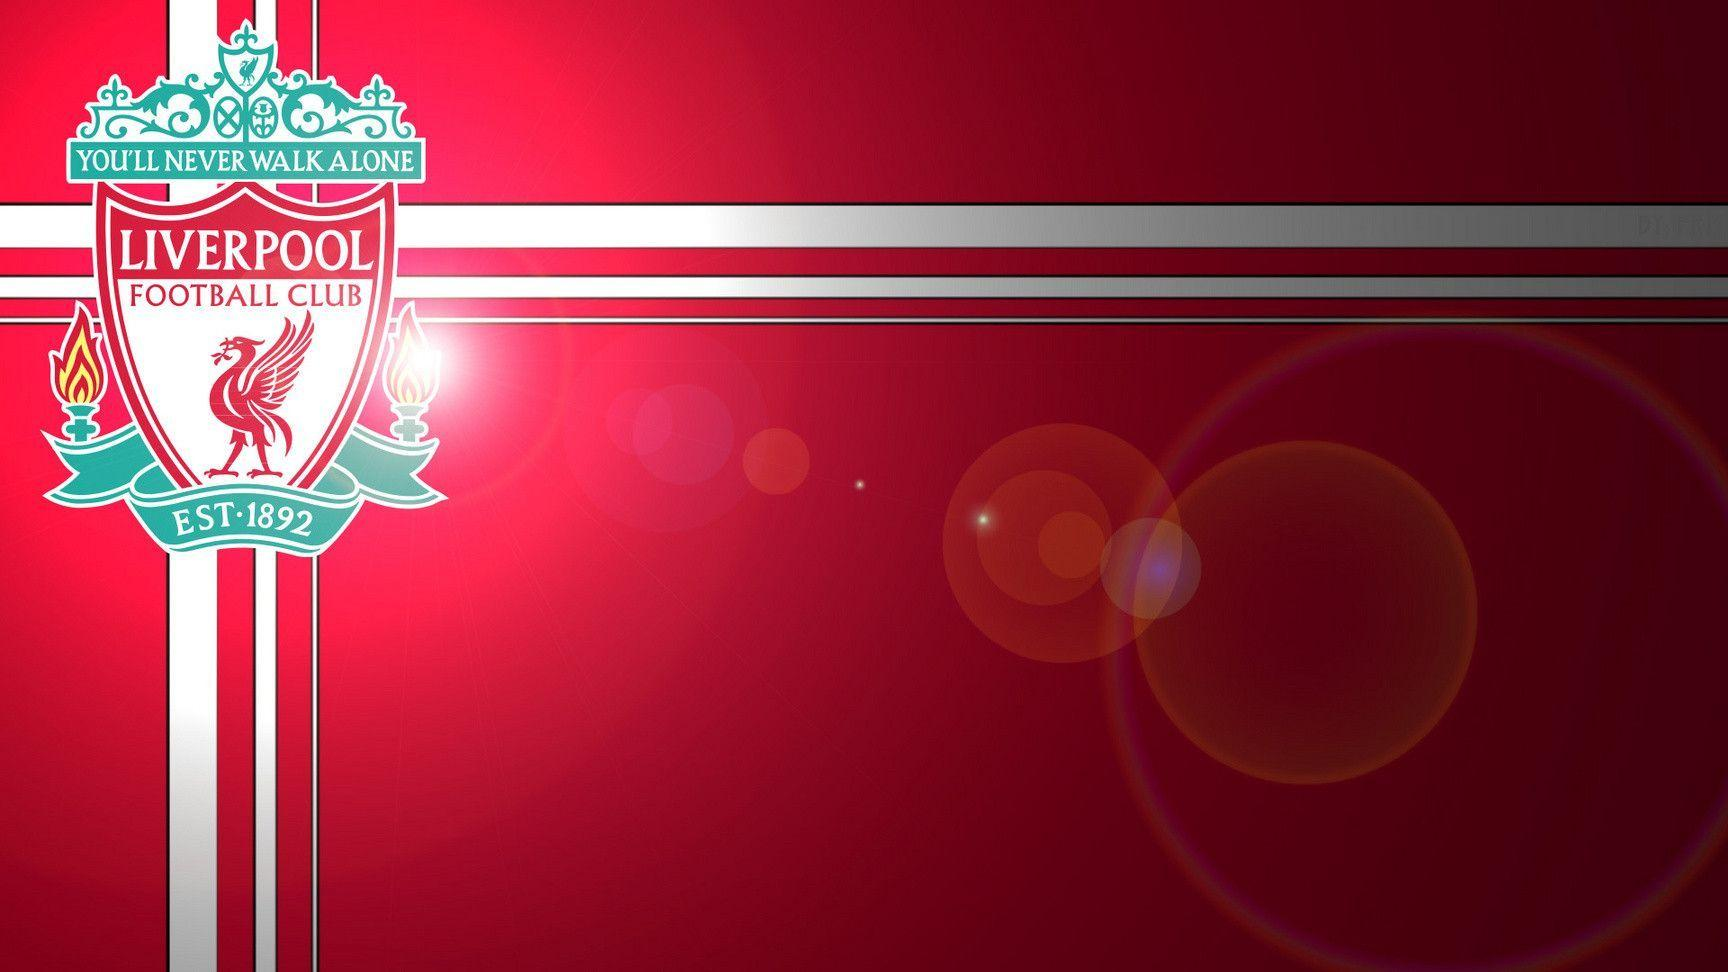 liverpool fc wallpaper, liverpool photo